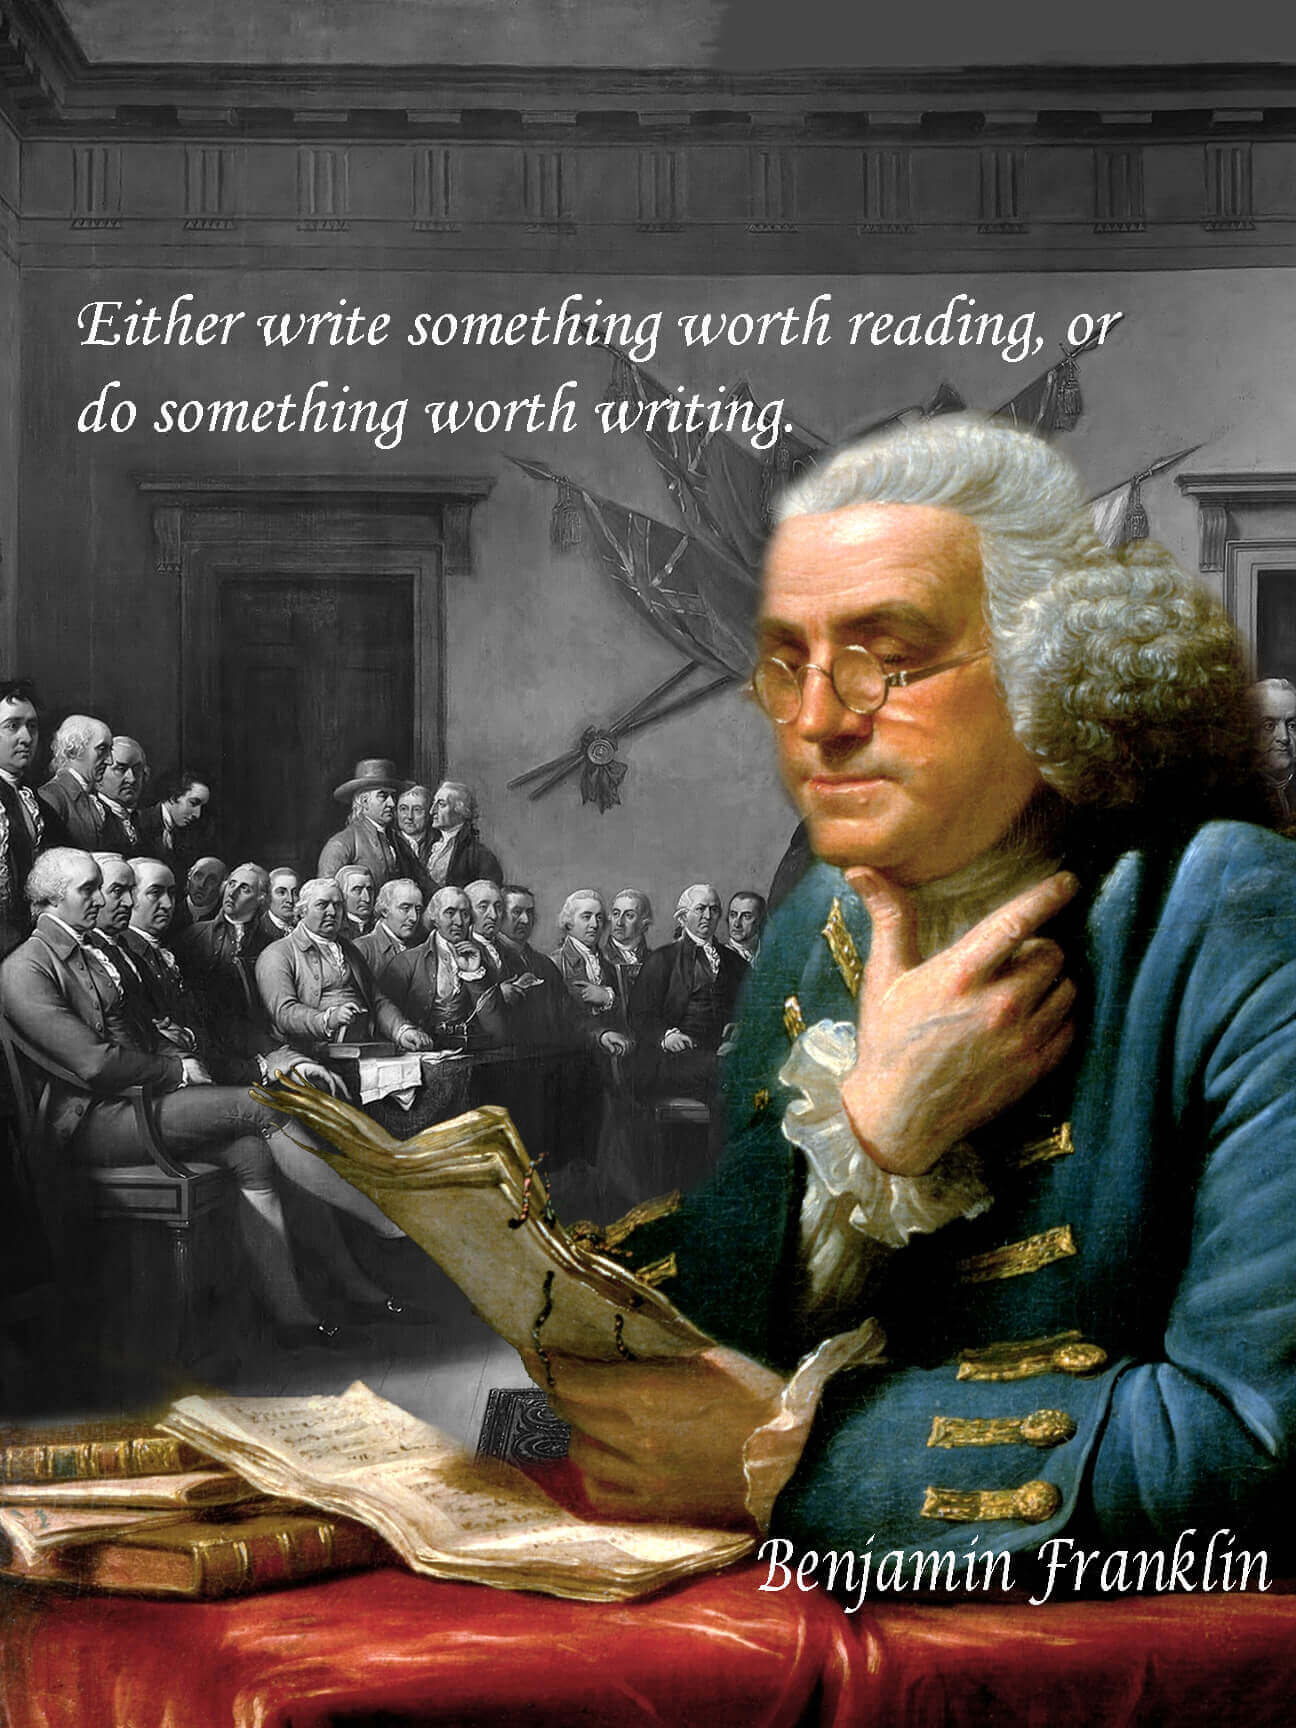 Benjamin Franklin quote, founding fathers